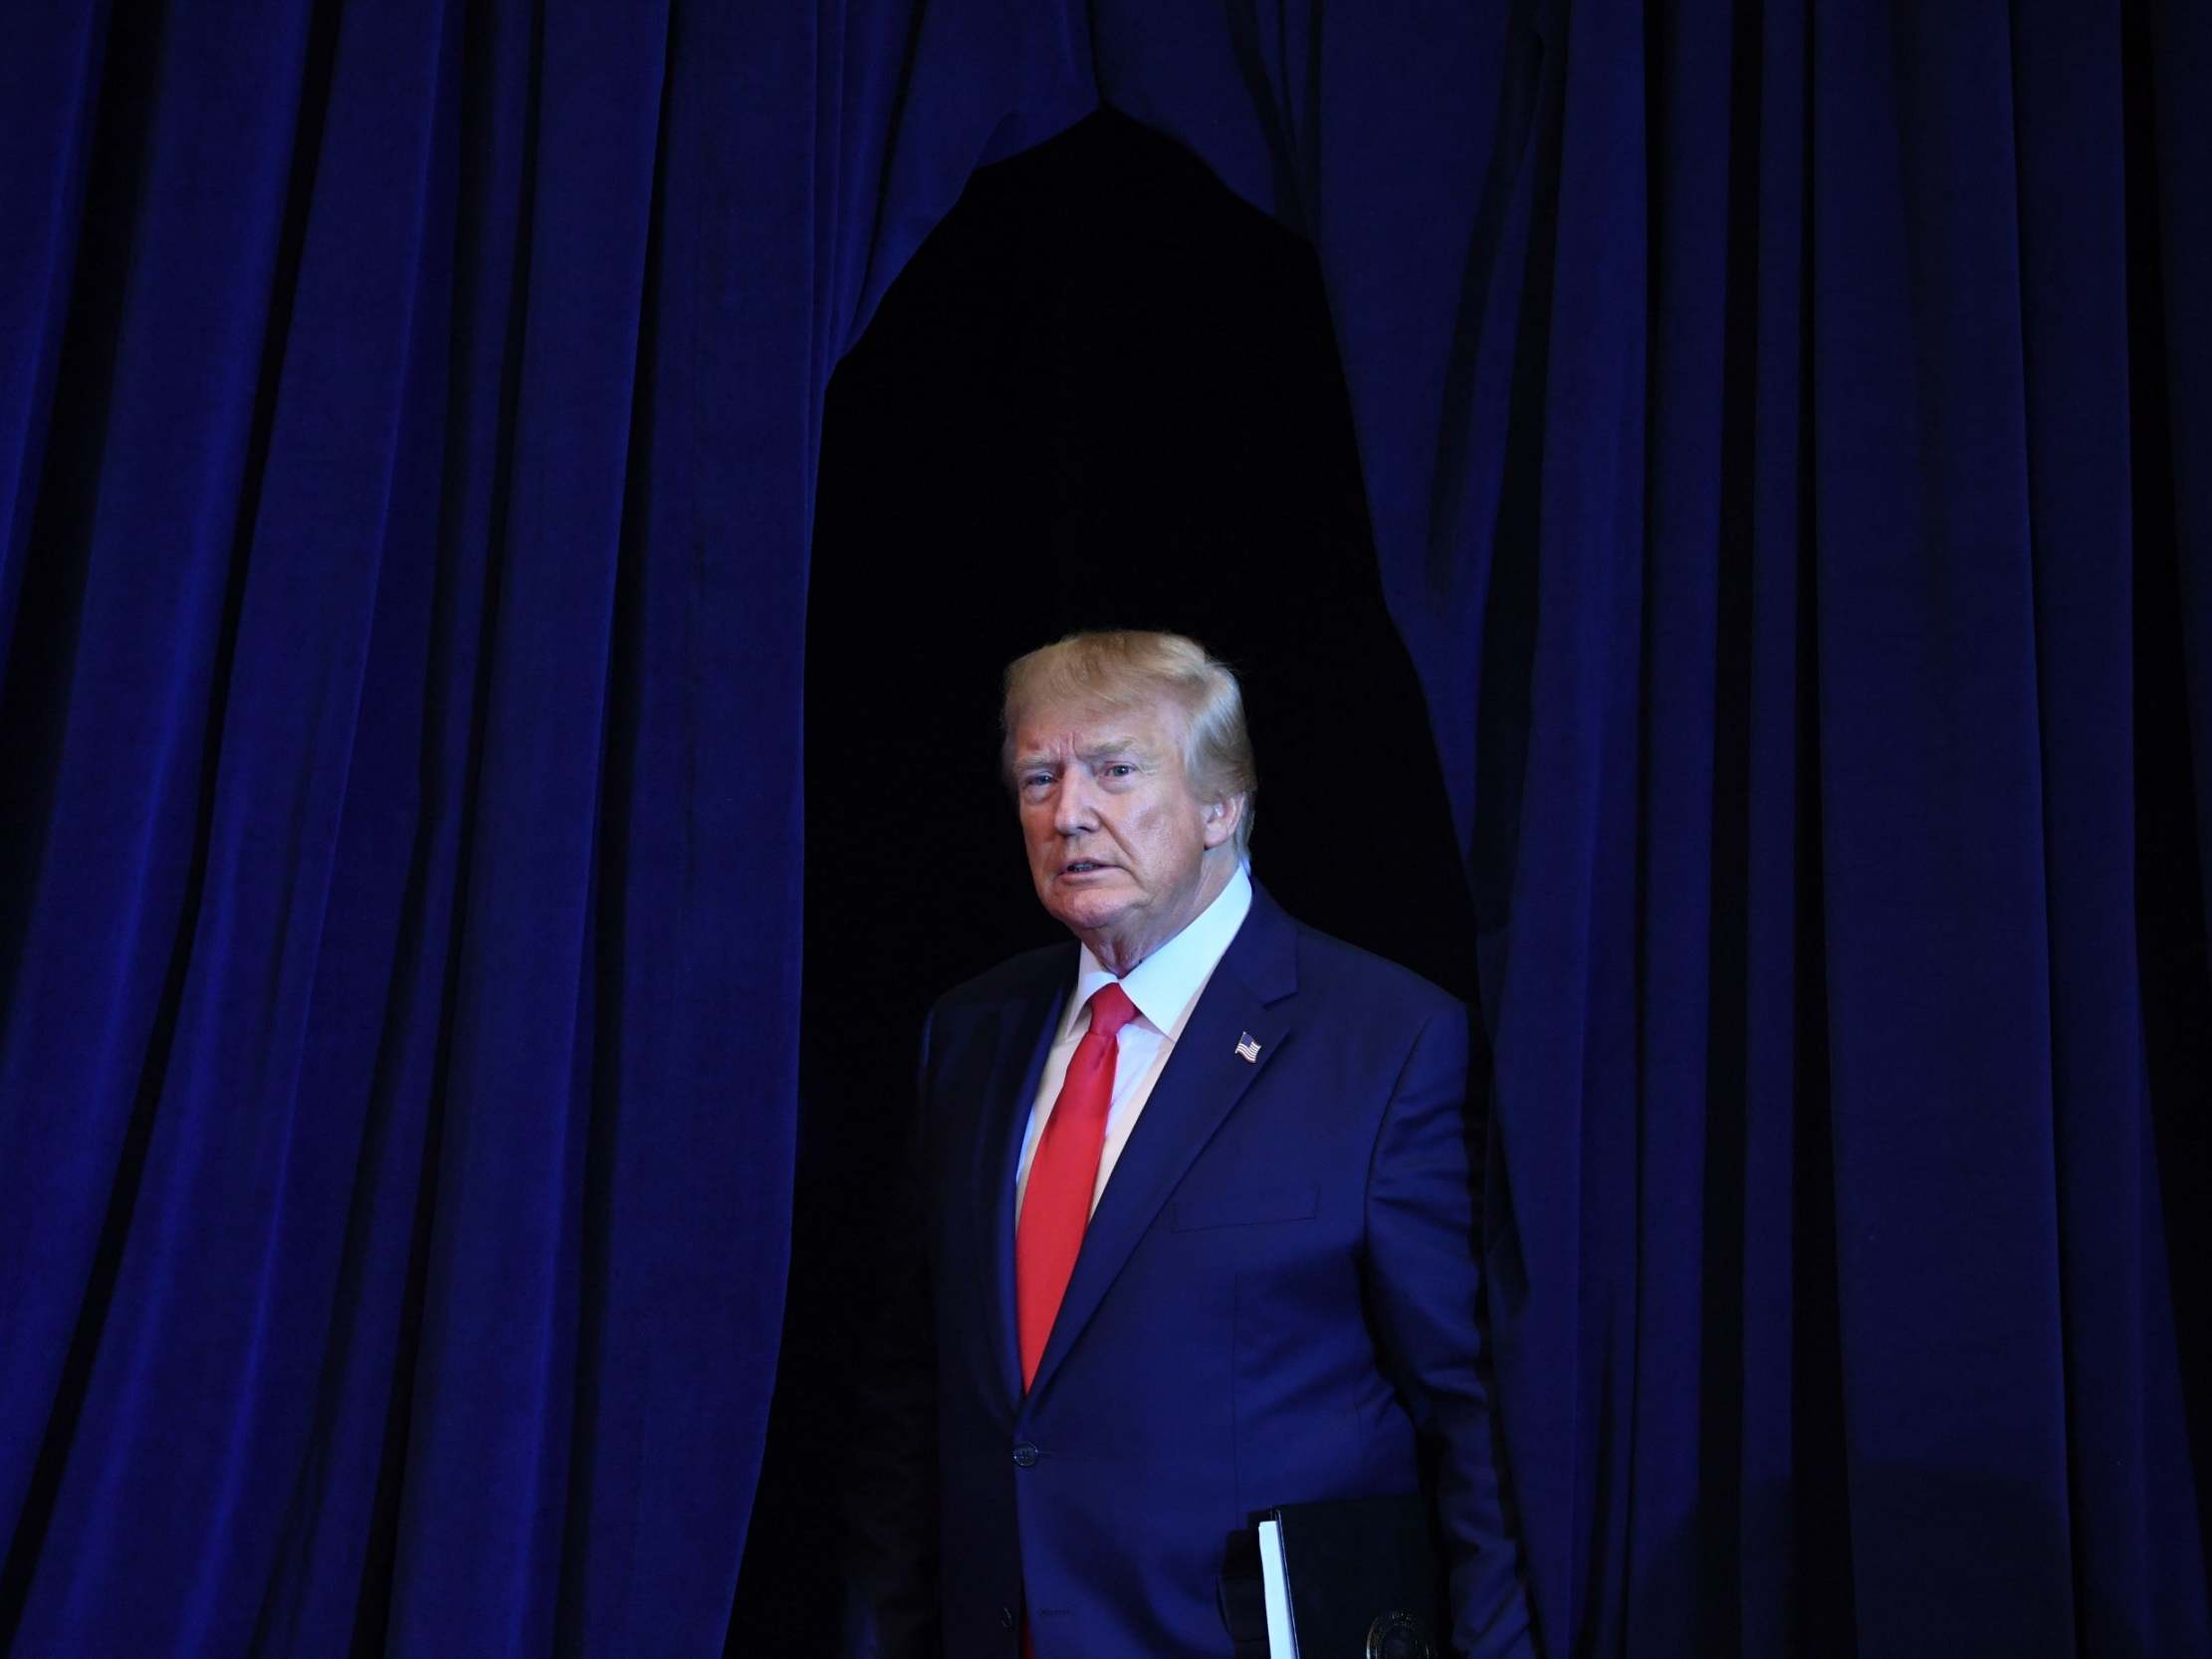 Trump news - live: 'Explosive' whistleblower complaint details emerge as president rages and impeachment drive intensifies